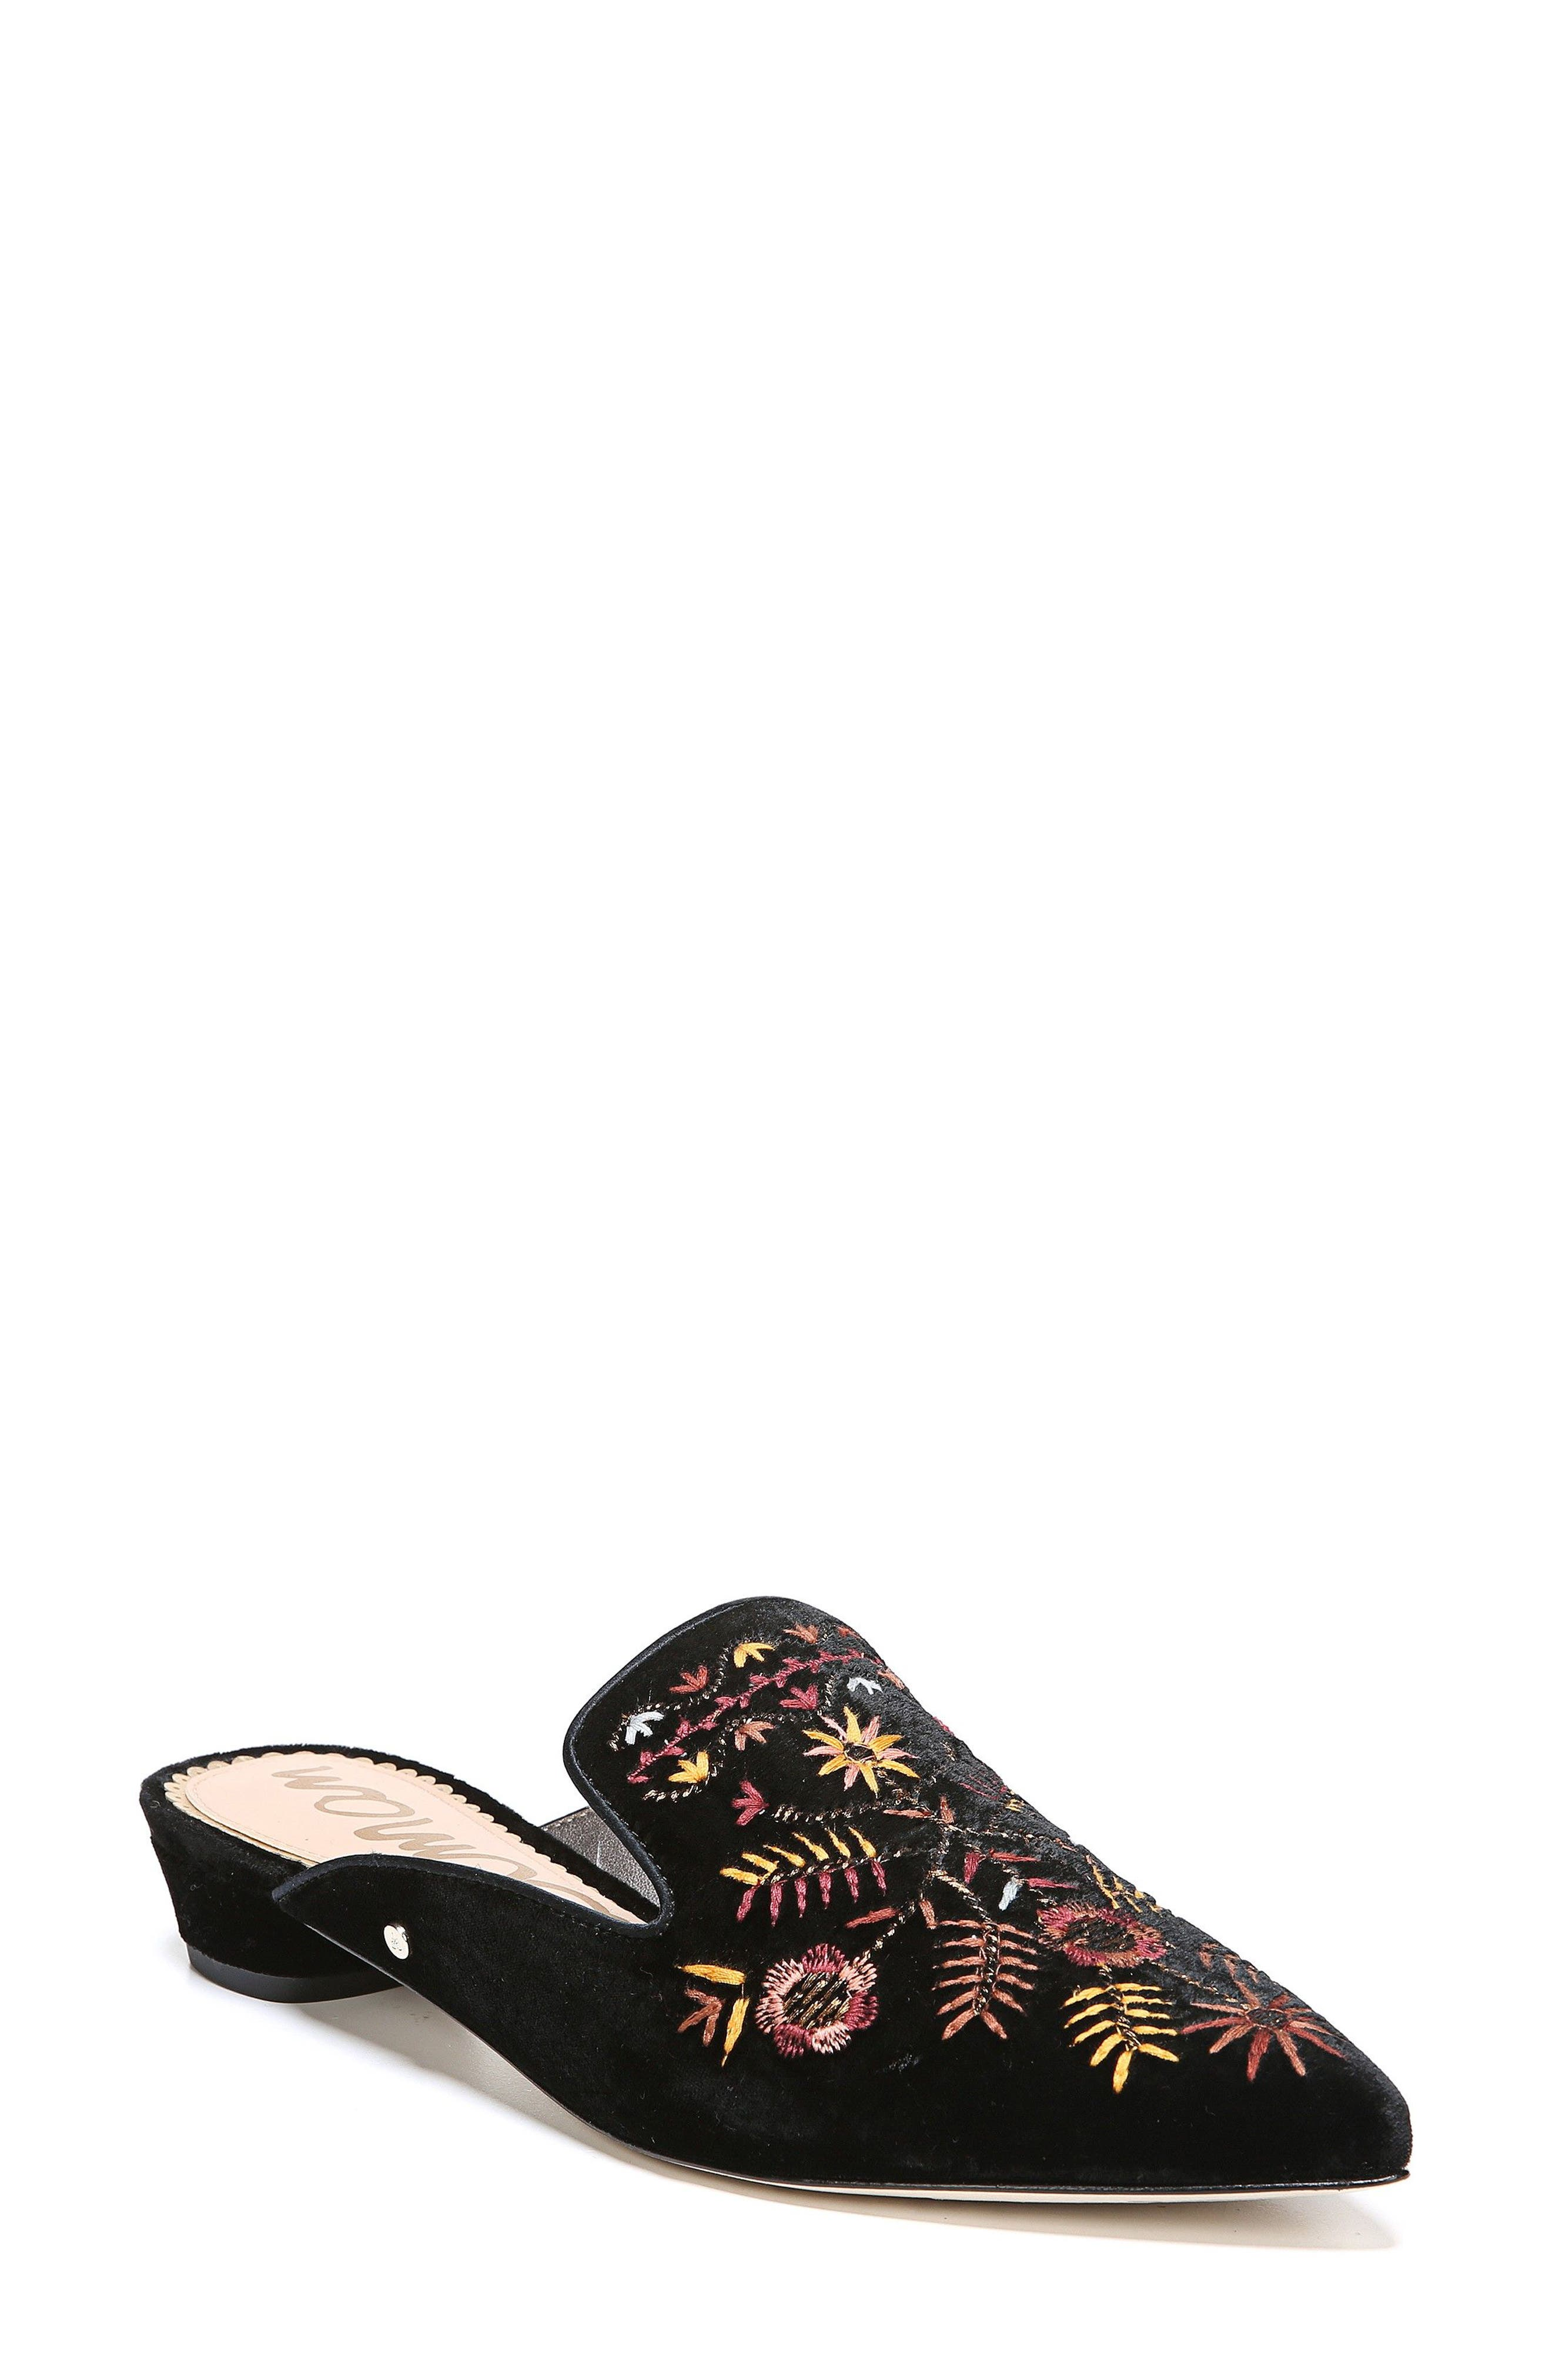 Alternate Image 1 Selected - Sam Edelman Ansley Pointy Toe Loafer Mule (Women)